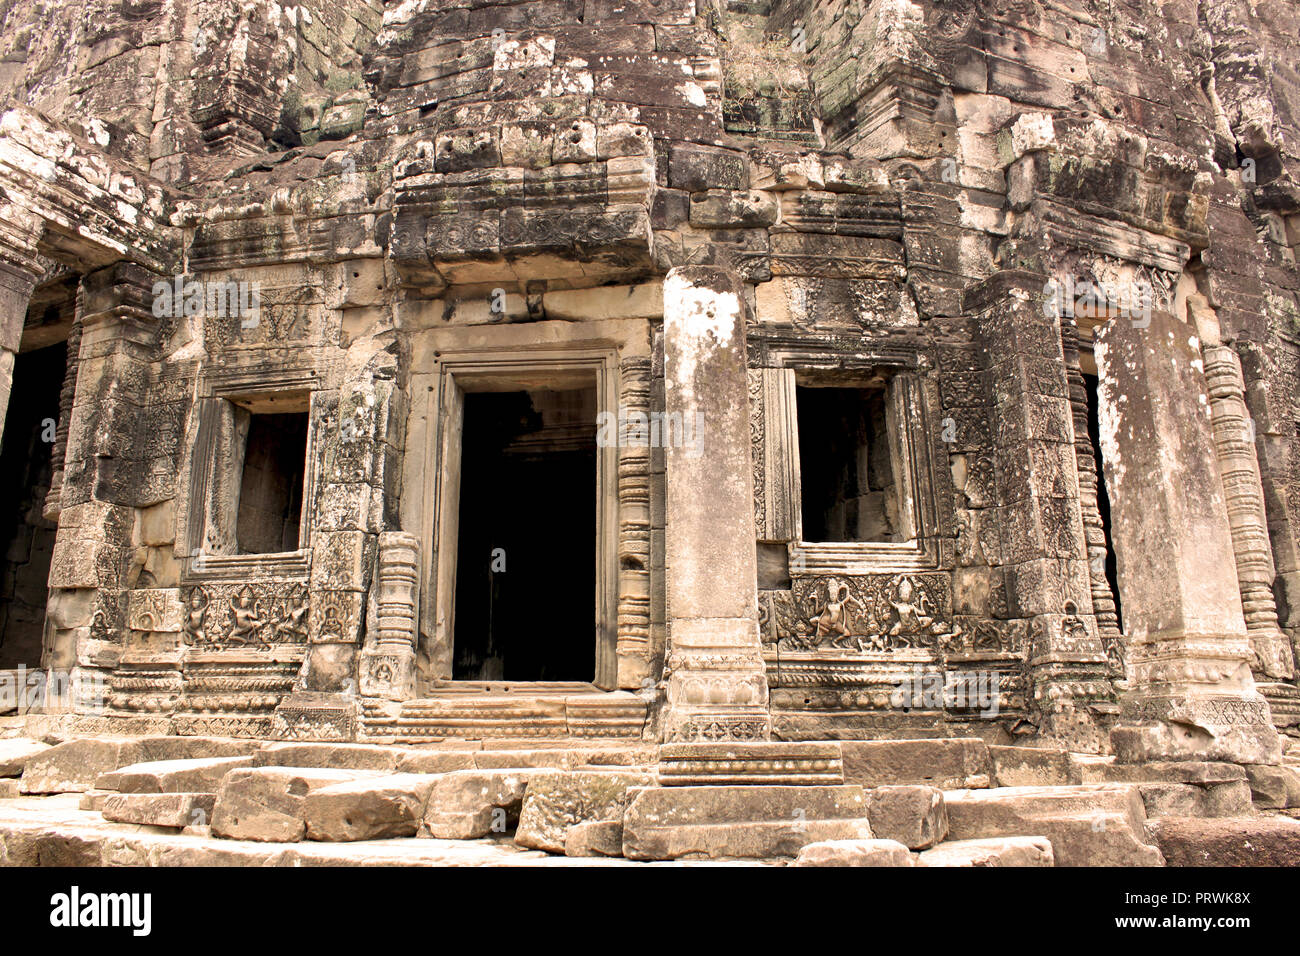 Building of the ancient Angkor Thom Bayon Temple in the Angkor Area, near Siem Reap, Cambodia, Asia. Buddhist monastery from the 12th century. - Stock Image